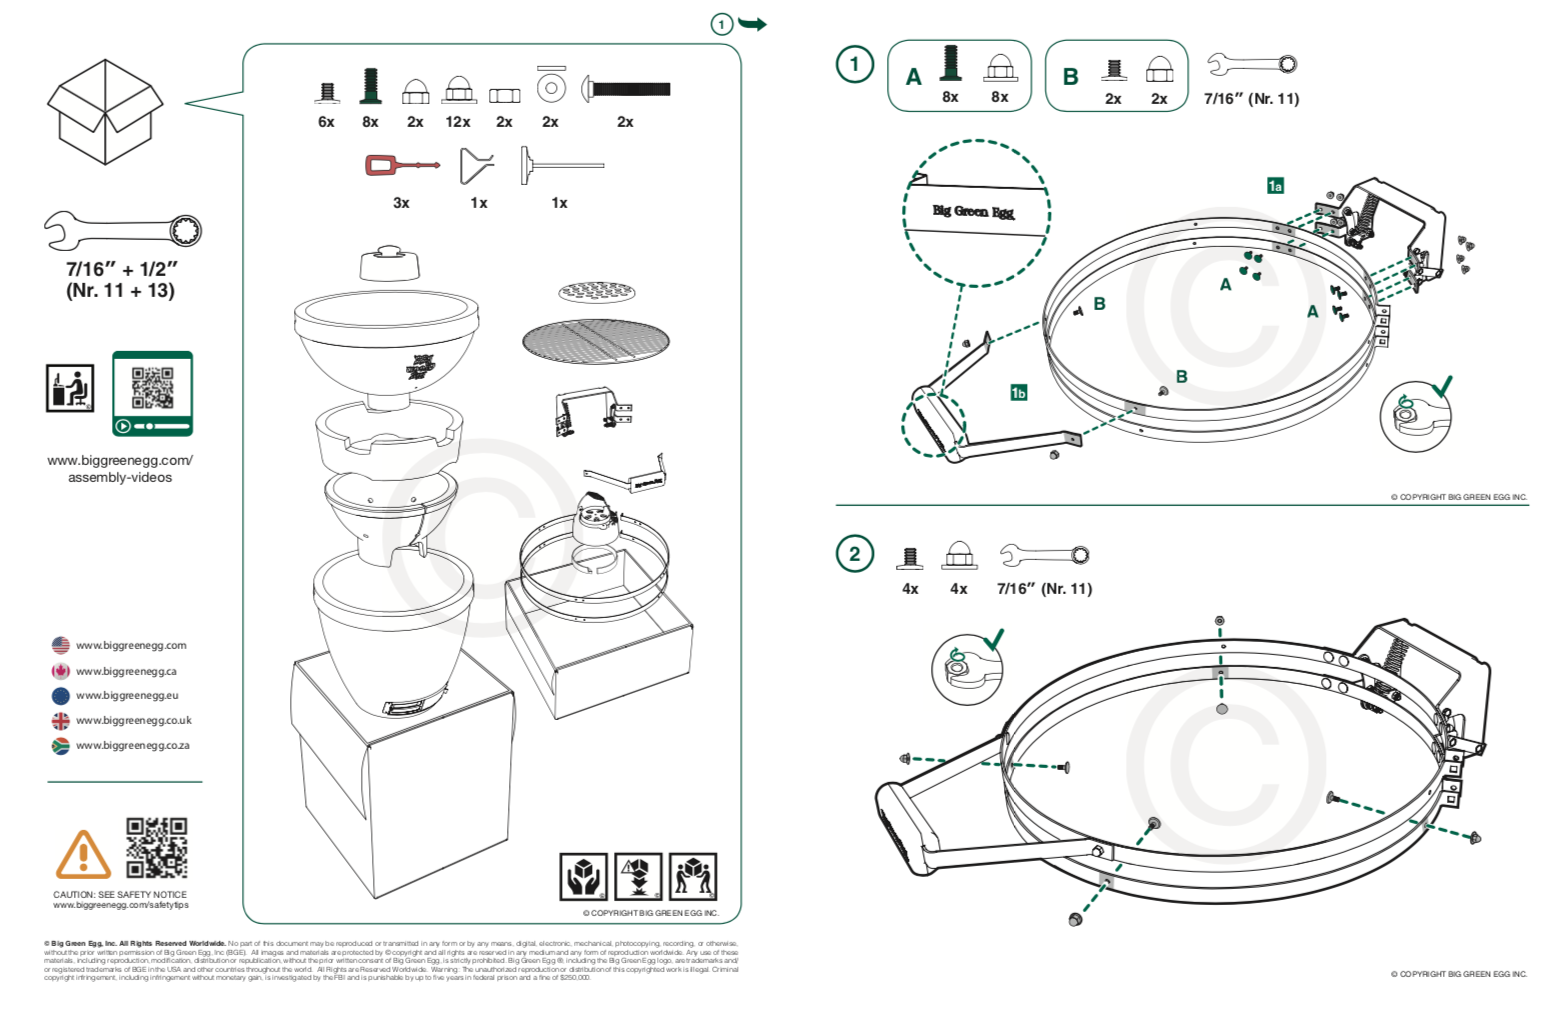 A quick start guide explaining the assembly of a Green Egg cooker